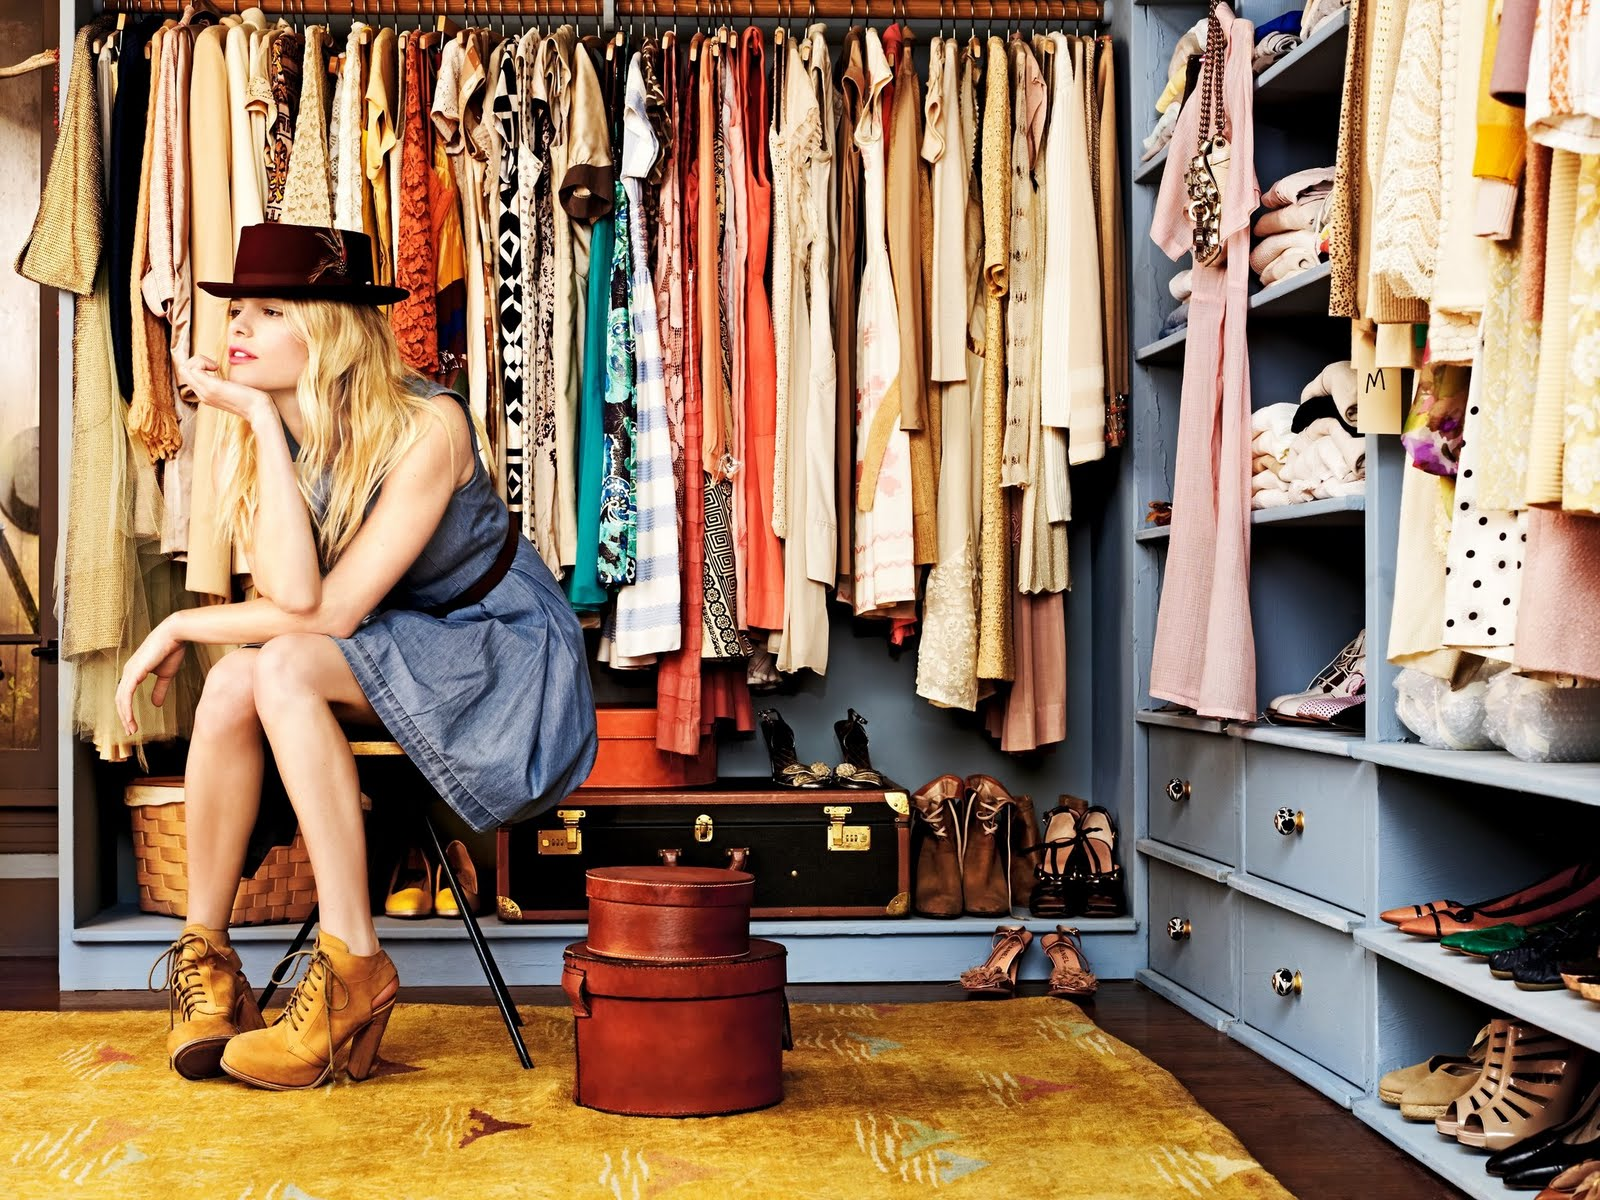 How To Clean Your Closet how to clean out your closet - ootd magazine